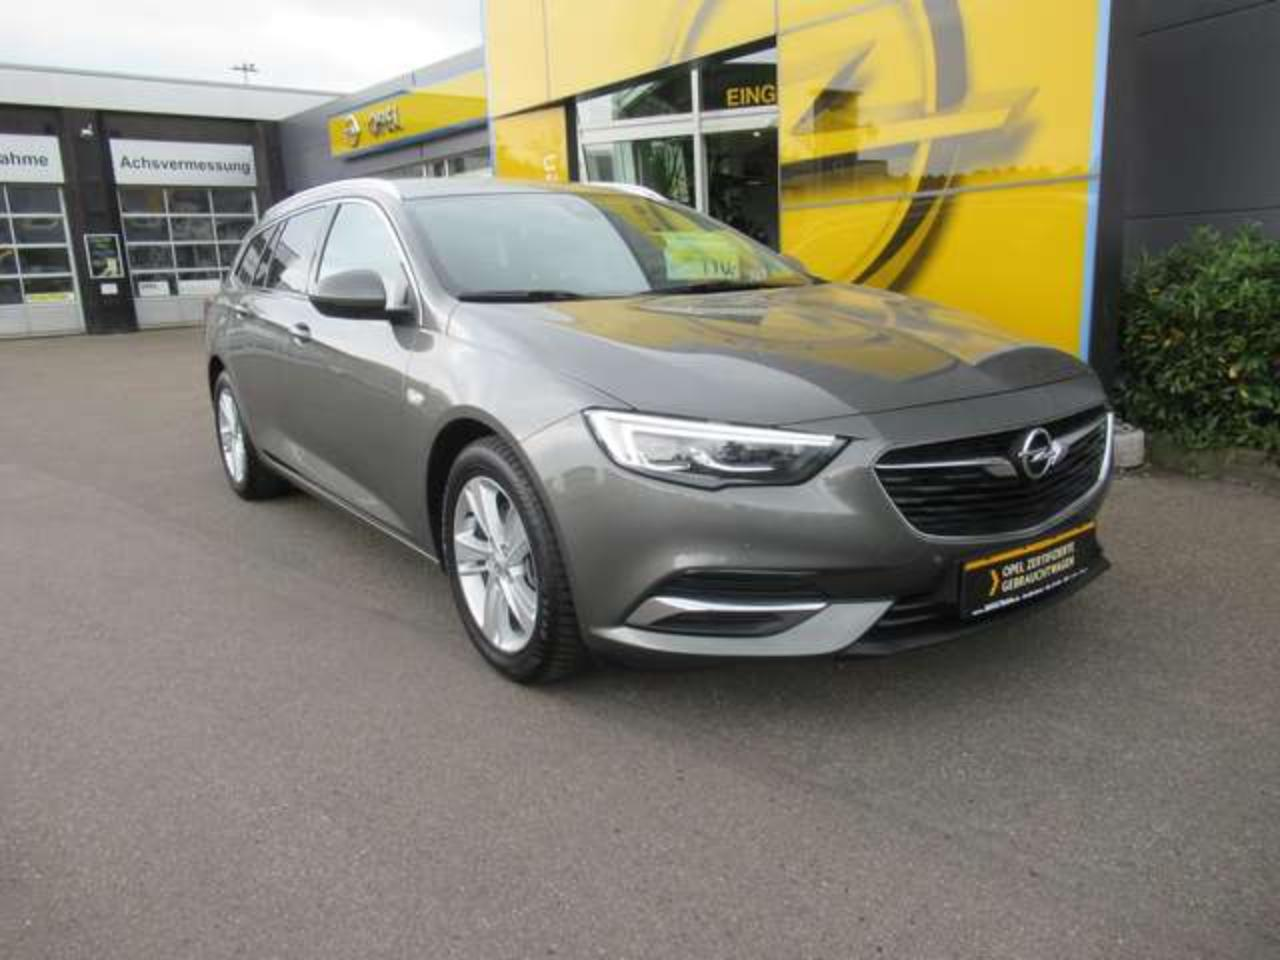 Opel Insignia Voll-LED Beleuchtung, 1,5 Turbo Innovation,